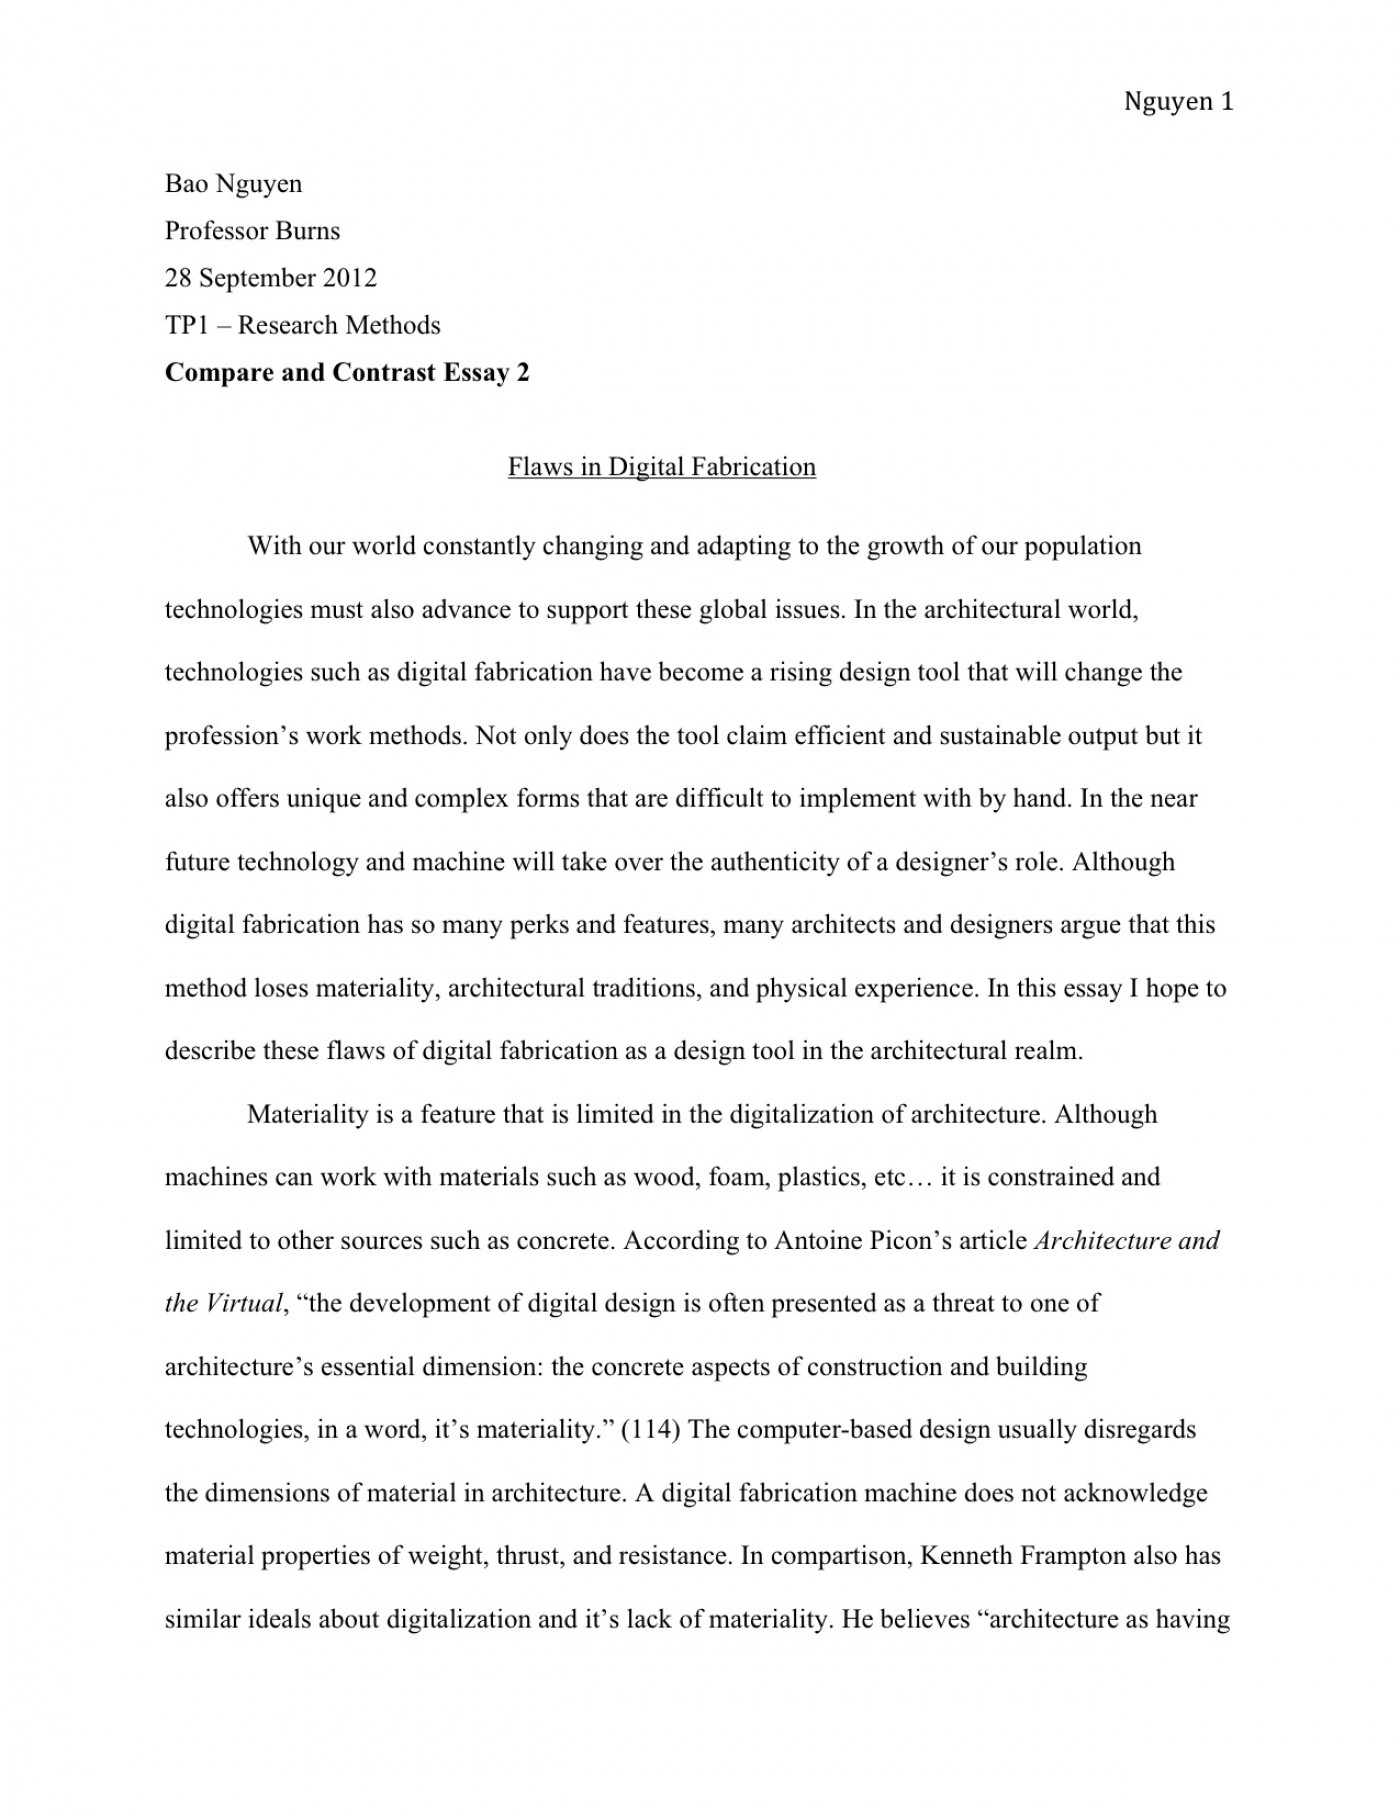 007 Essay Example Good Hooks For Essays Tp1 3 Unforgettable About Gun Control Examples Of Expository Persuasive 1400